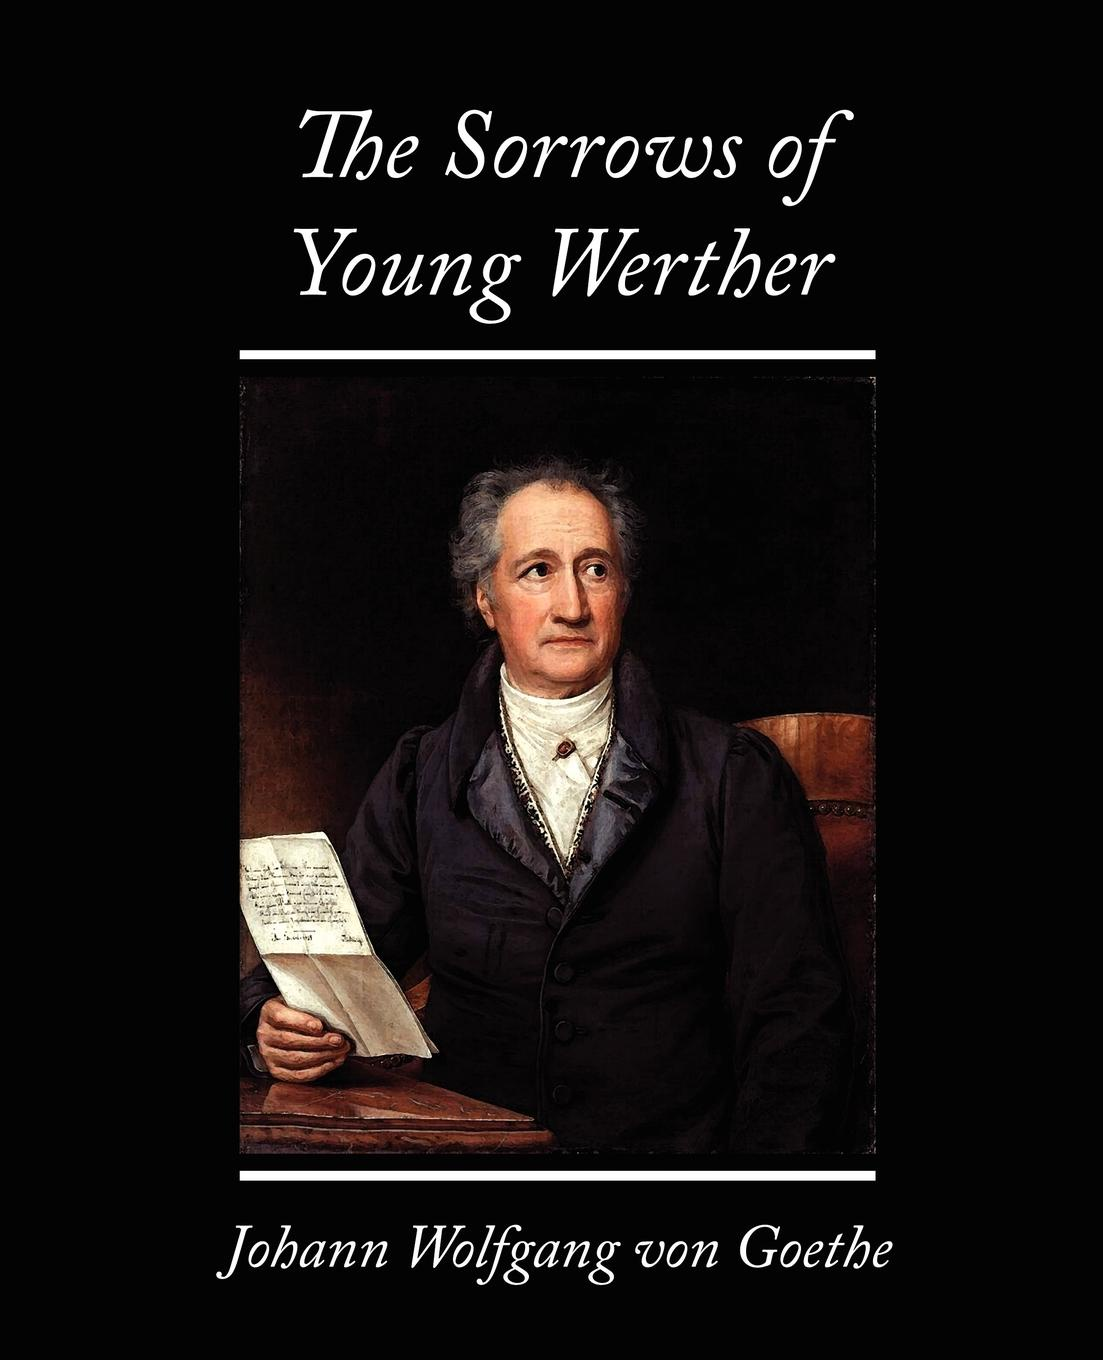 Wolfgang Von Johann Wolfgang Von Goethe, Johann Wolfgang von Goethe The Sorrows of Young Werther peter p pachl richard wagner und johann wolfgang v goethe